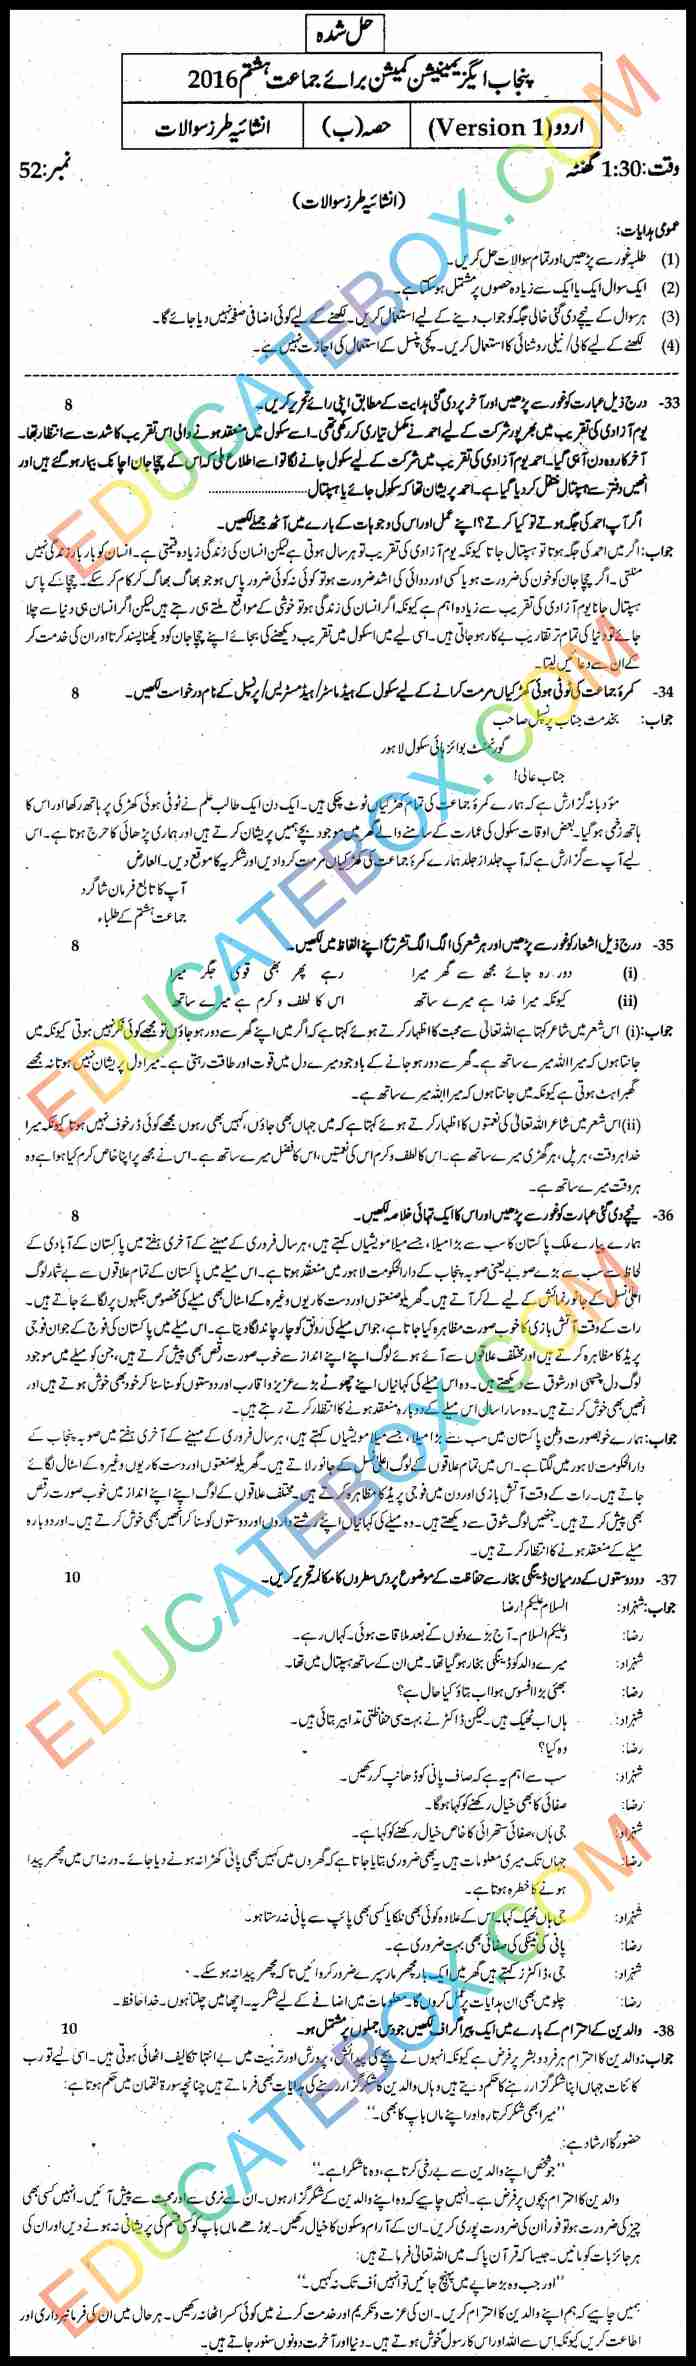 Past Paper 8th Class Urdu 2016 Solved Paper Punjab Board (PEC) Subjective Type Version 1 اپ ٹو ڈیٹ پیپر آٹھویں کلاس اردو 2016 حل شدہ پیپر پنجاب بورڈ انشائیہ طرز۔ ورژن1